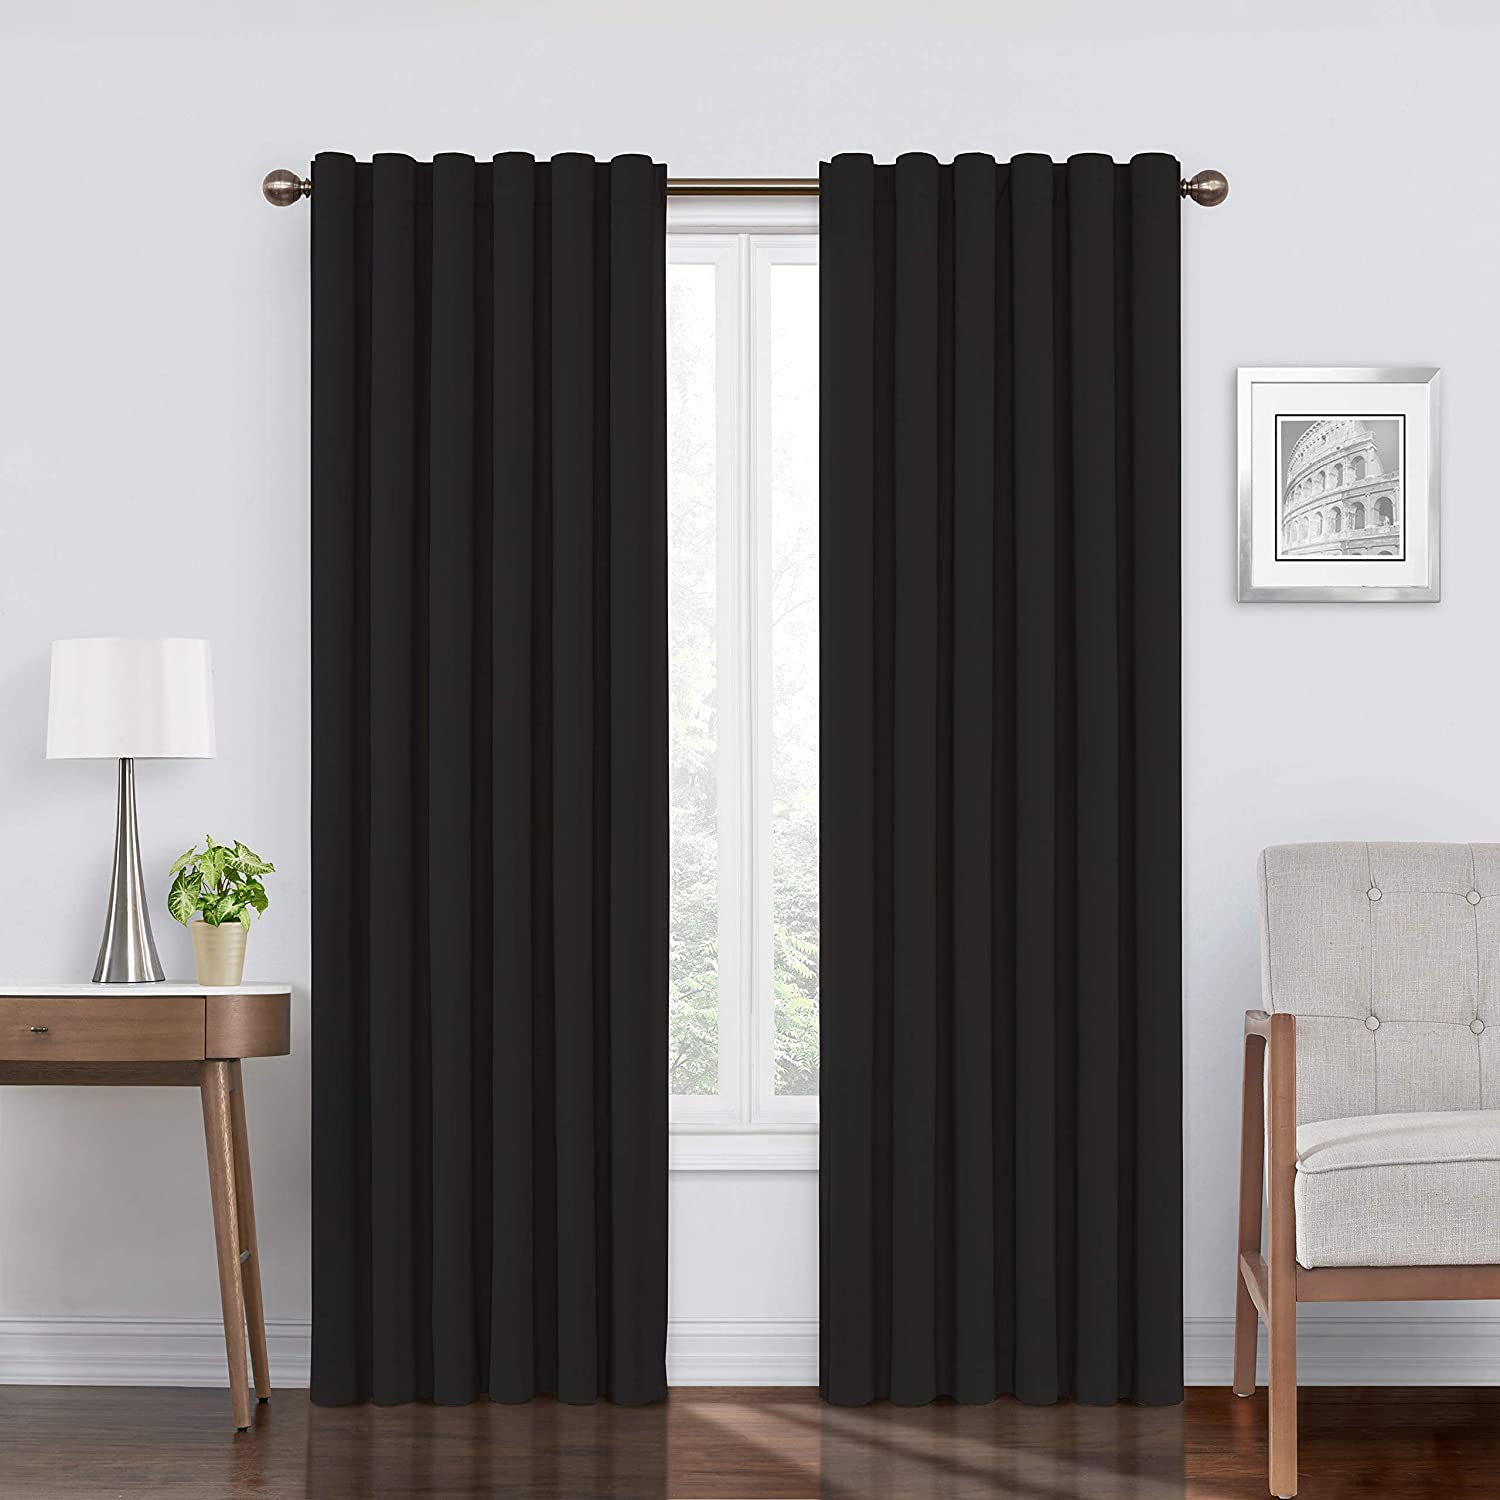 """ECLIPSE Bradley Thermal Insulated Single Panel Rod Pocket Darkening Curtains for Living Room, 50"""" x 84"""", Black"""